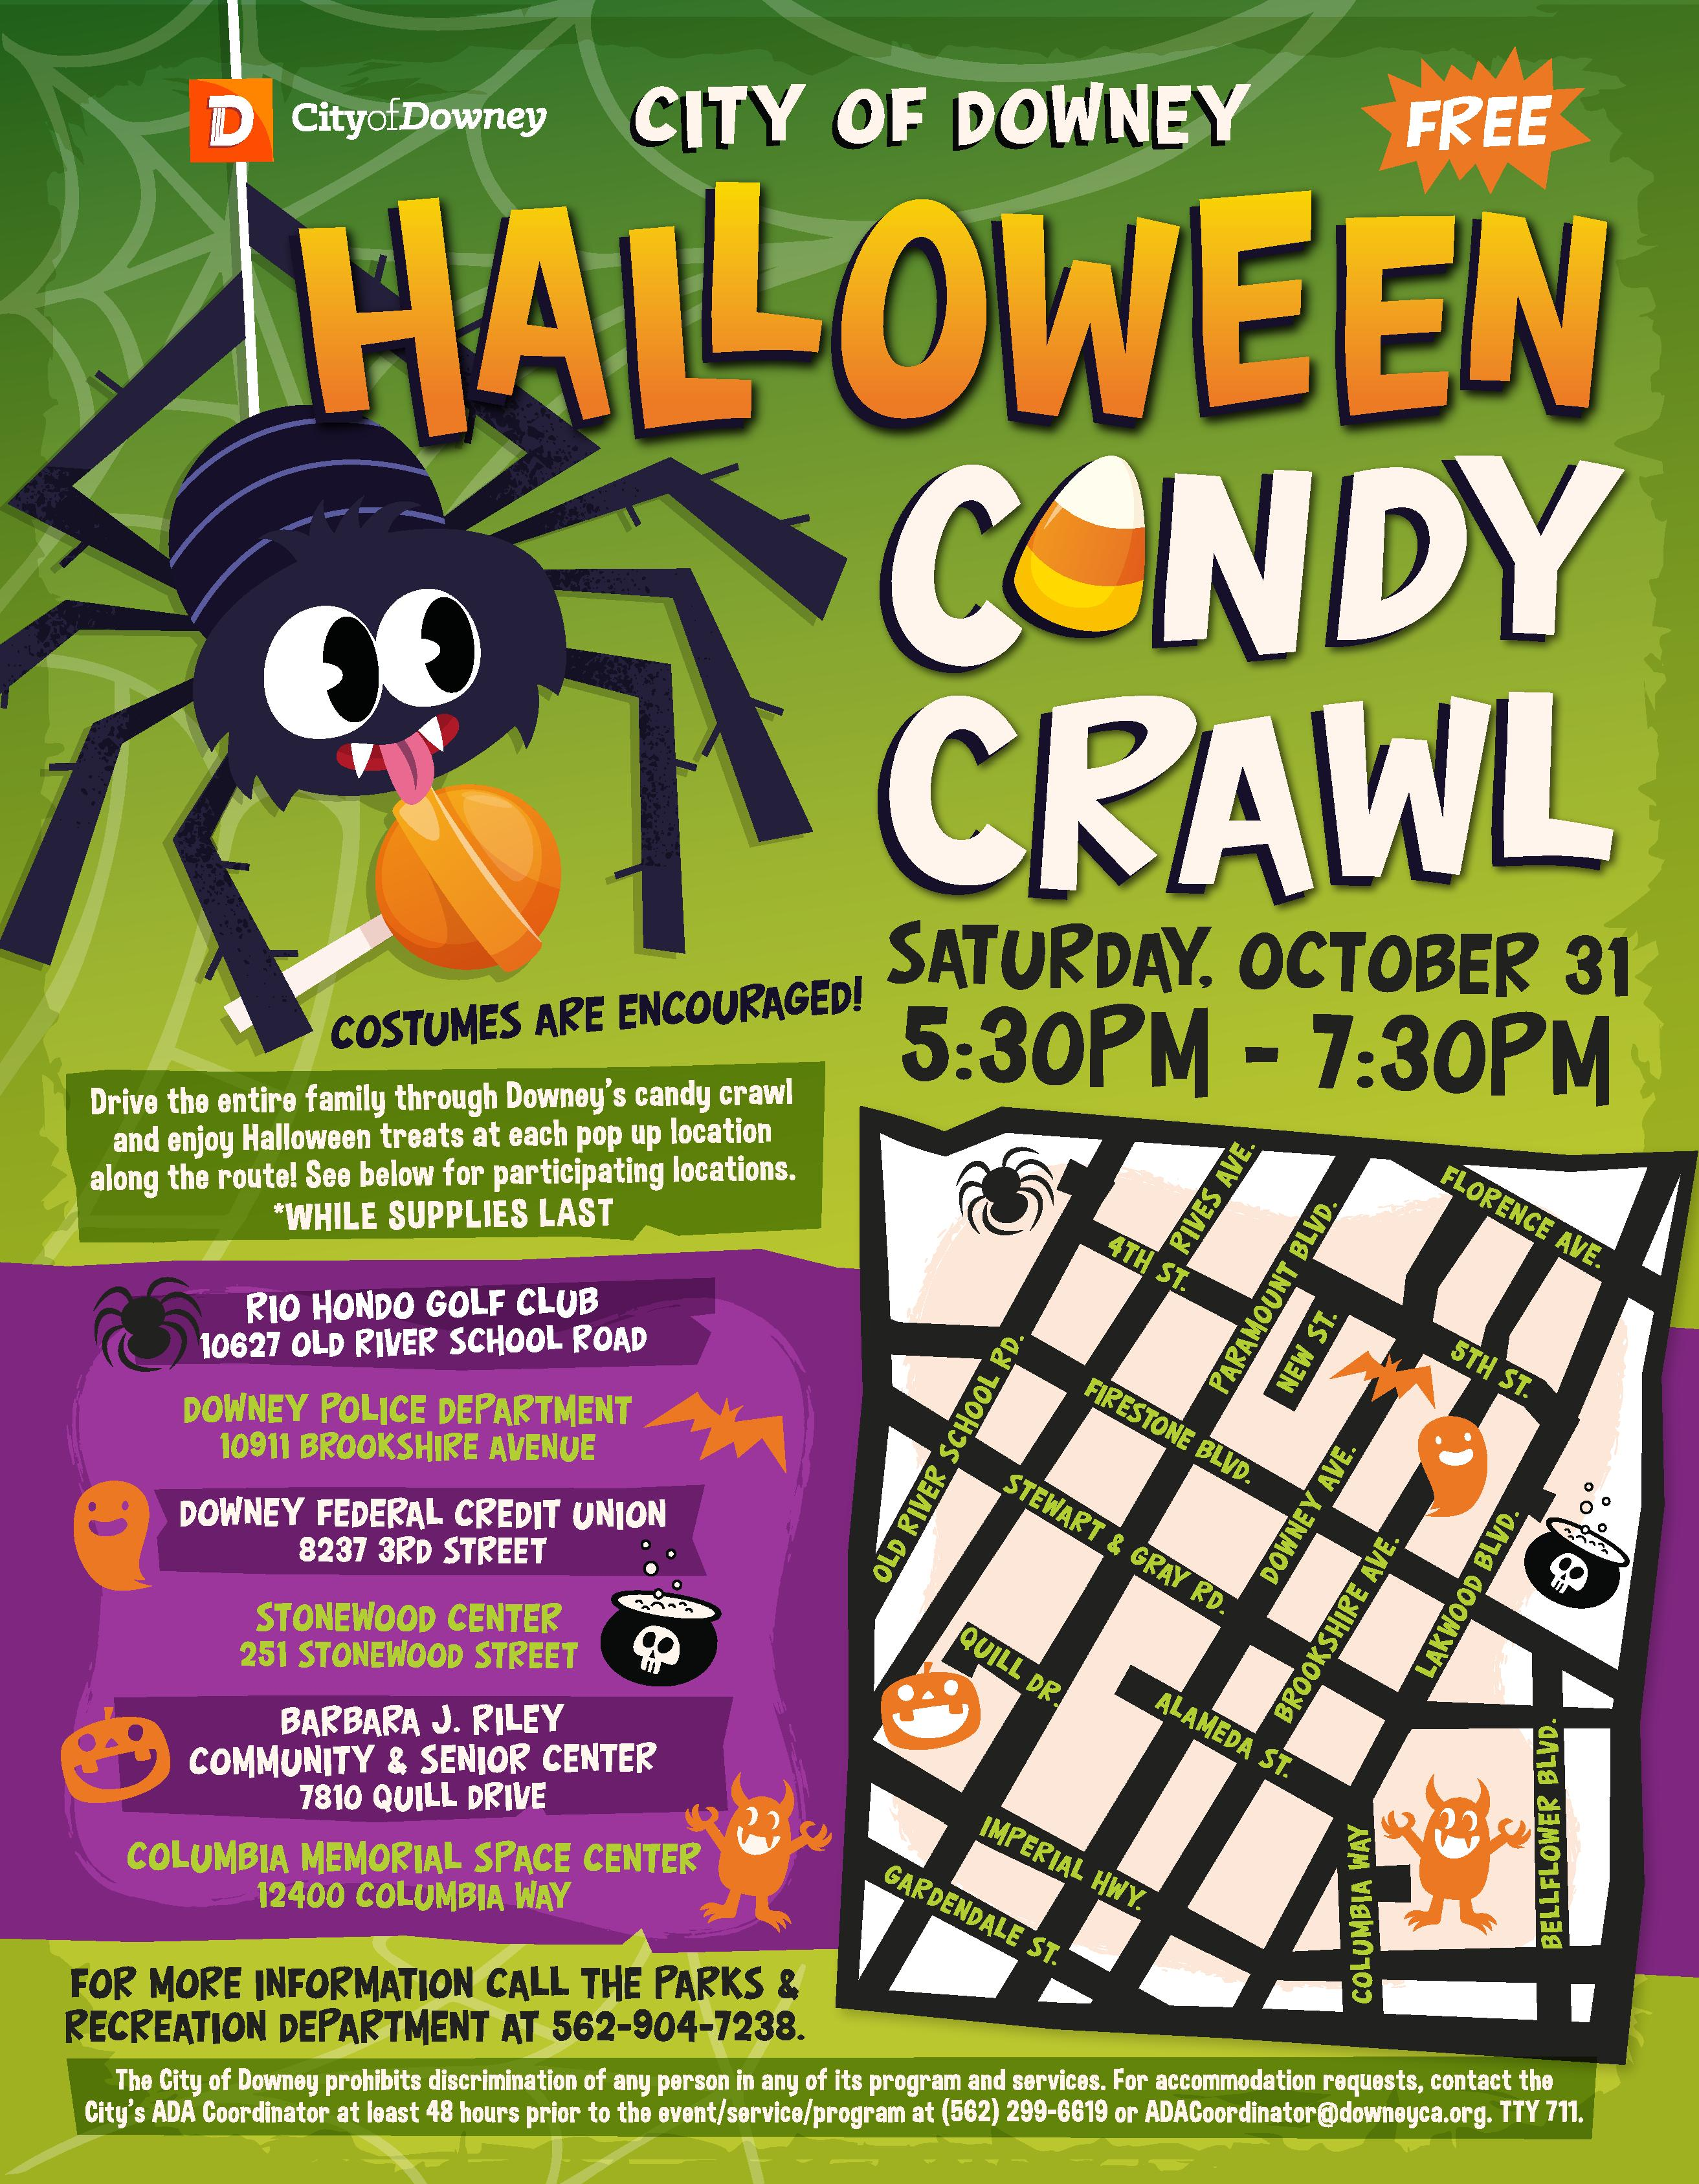 City of Downey Free Halloween Candy Crawl